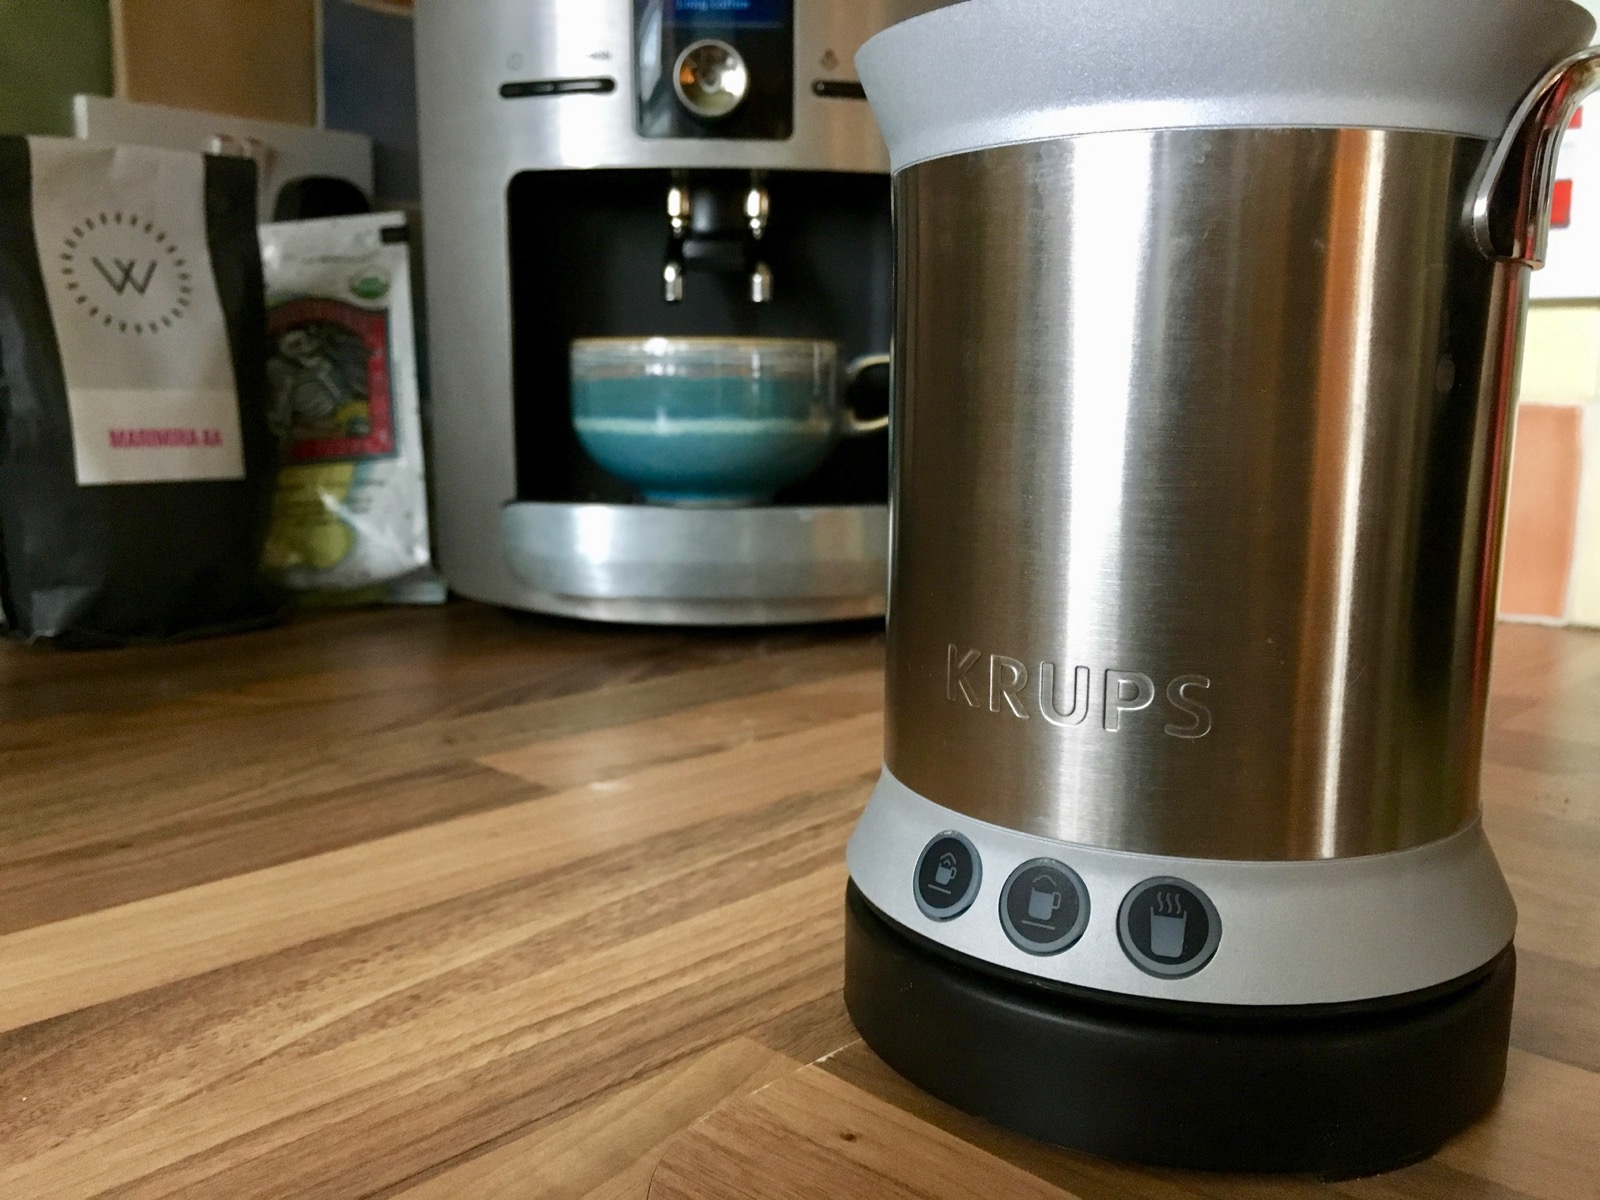 Close-up of the Krups Milk Frother with coffee machine in background